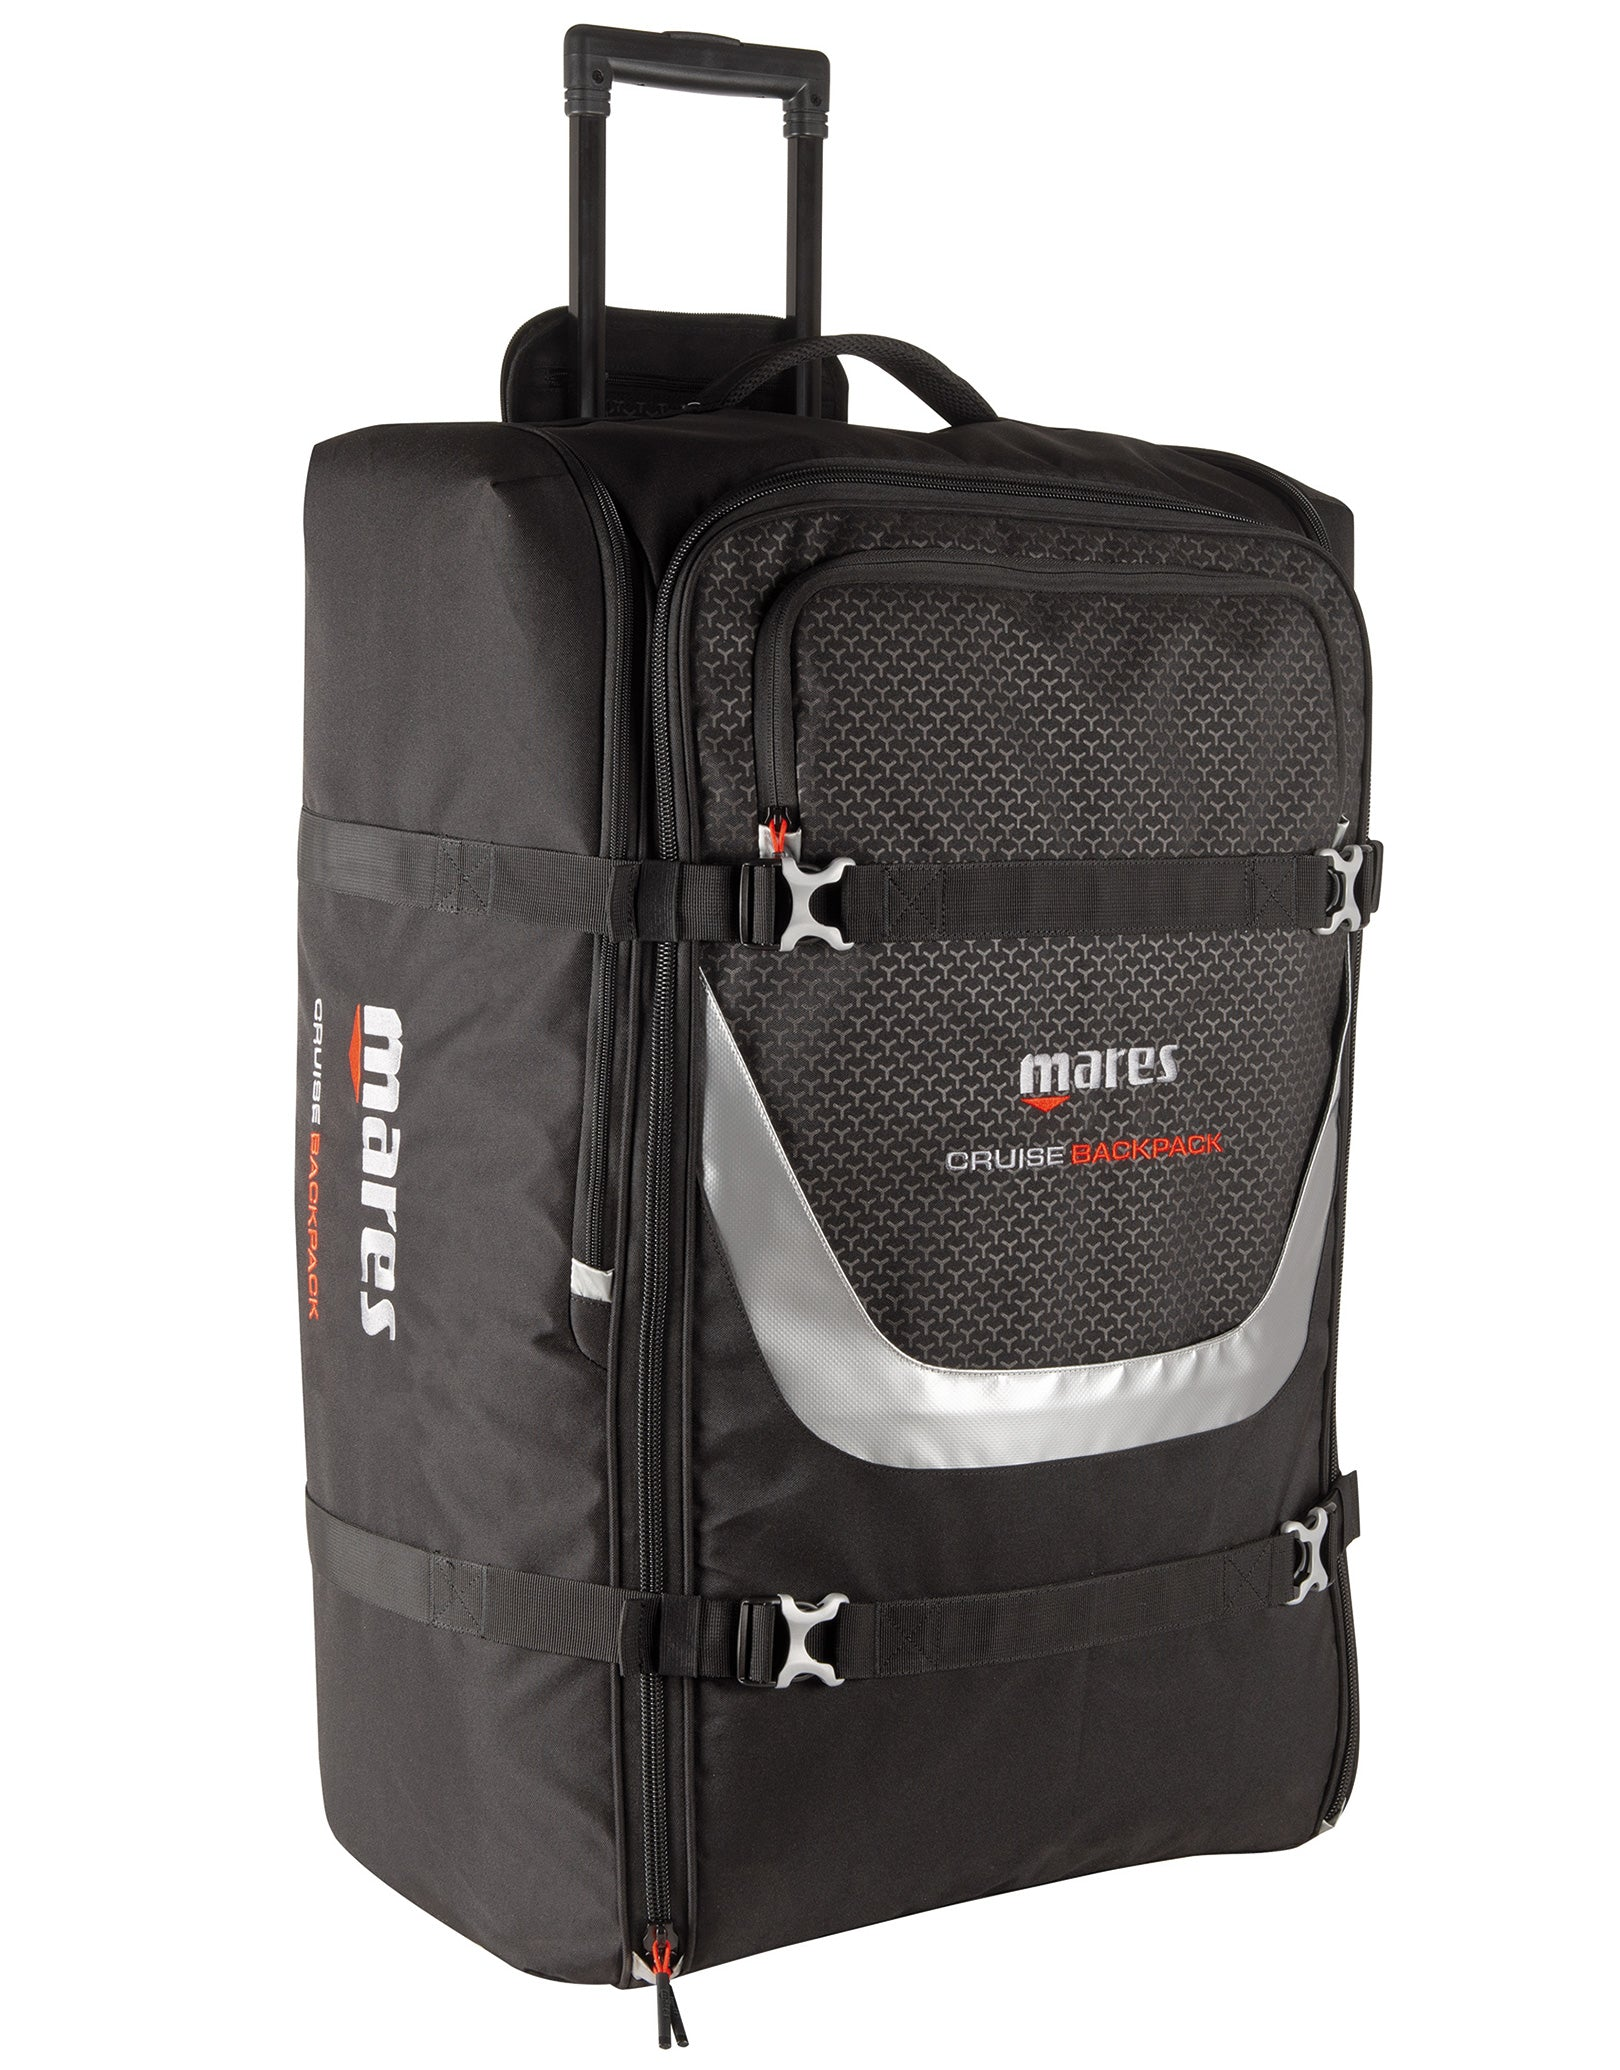 Image of Mares Cruise BackPack Pro Bag